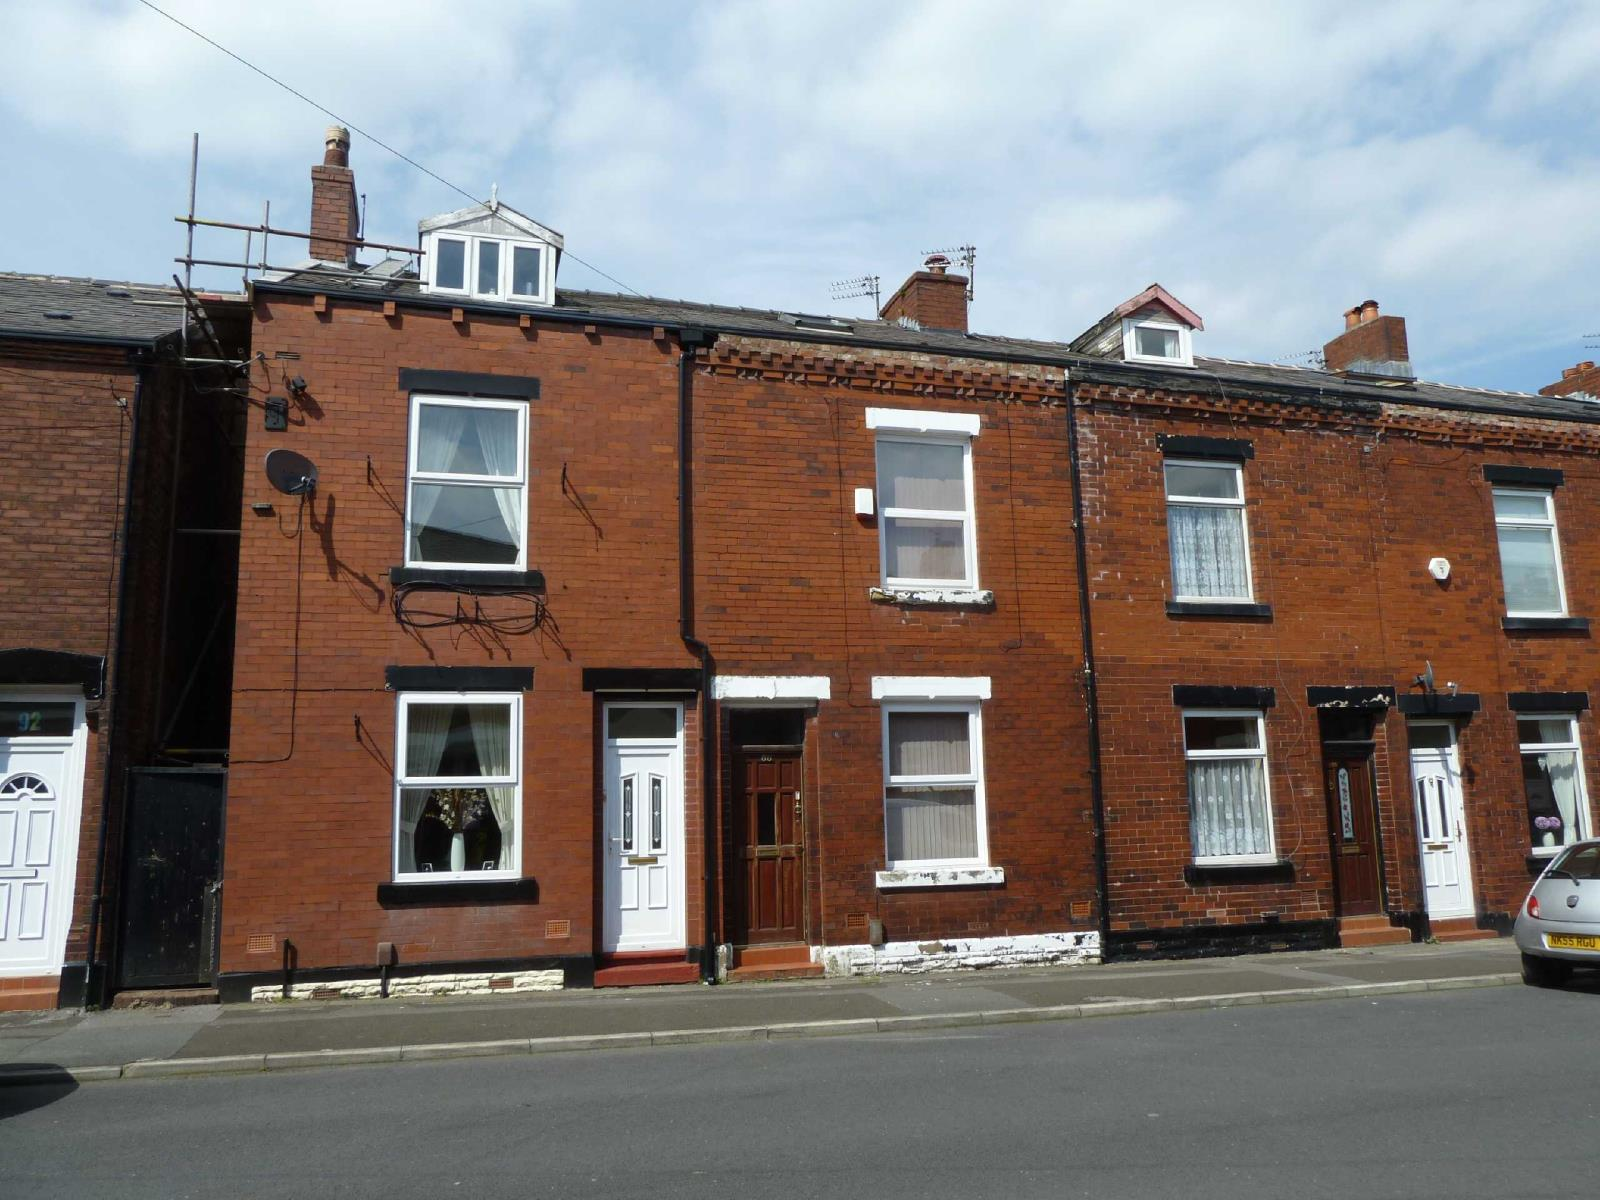 3 Bedrooms Terraced House for sale in Crawford Street, Cockbrook, Ashton-under-lyne, Lancashire, OL6